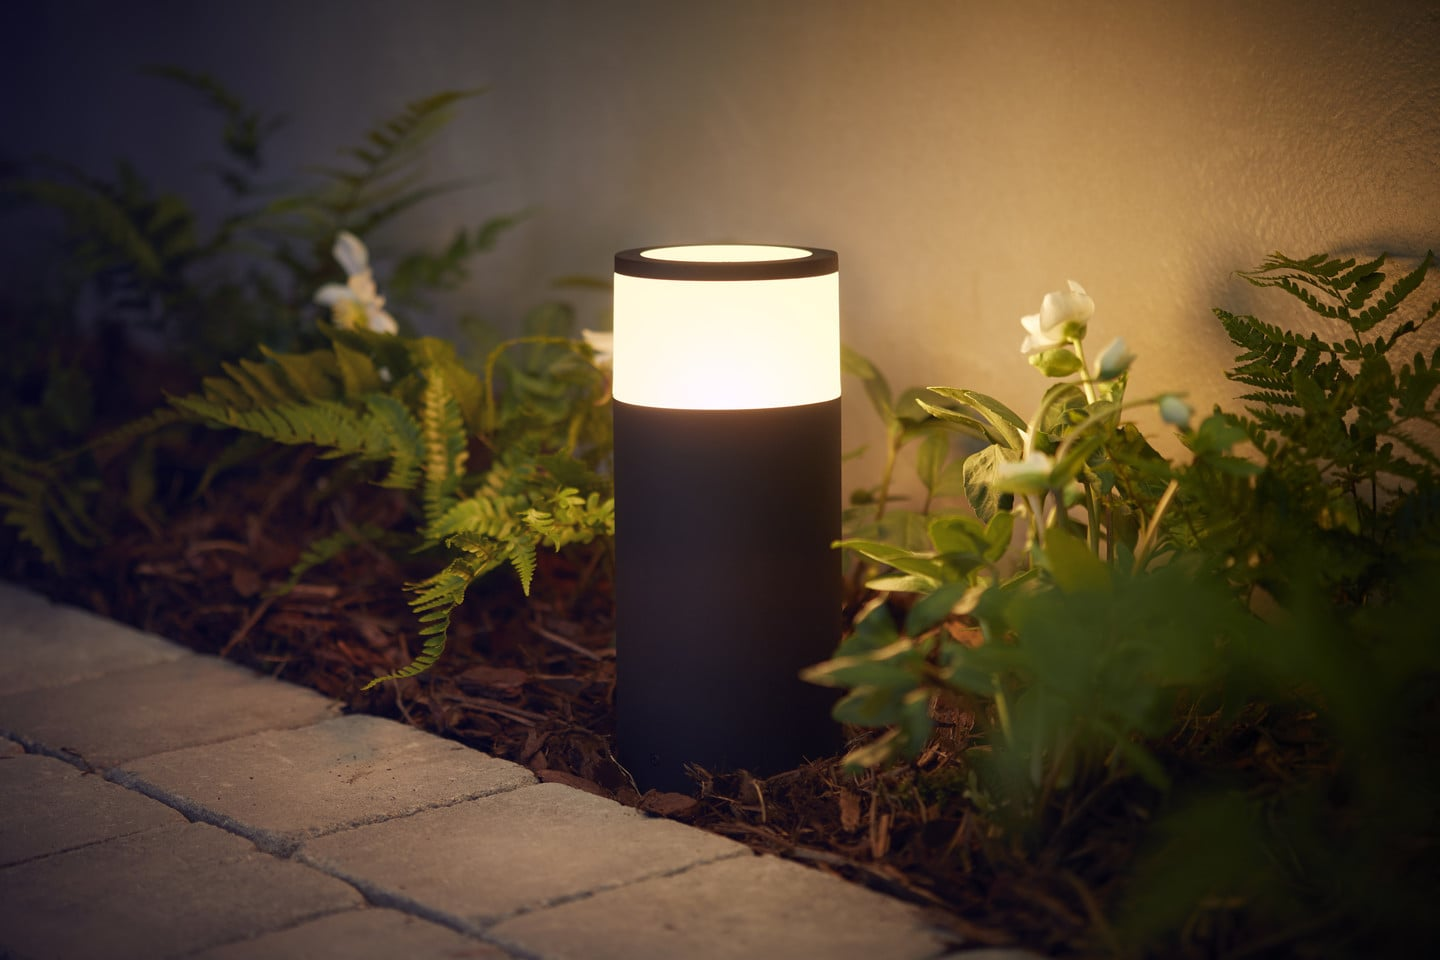 Philips introduces its first outdoor Hue lights